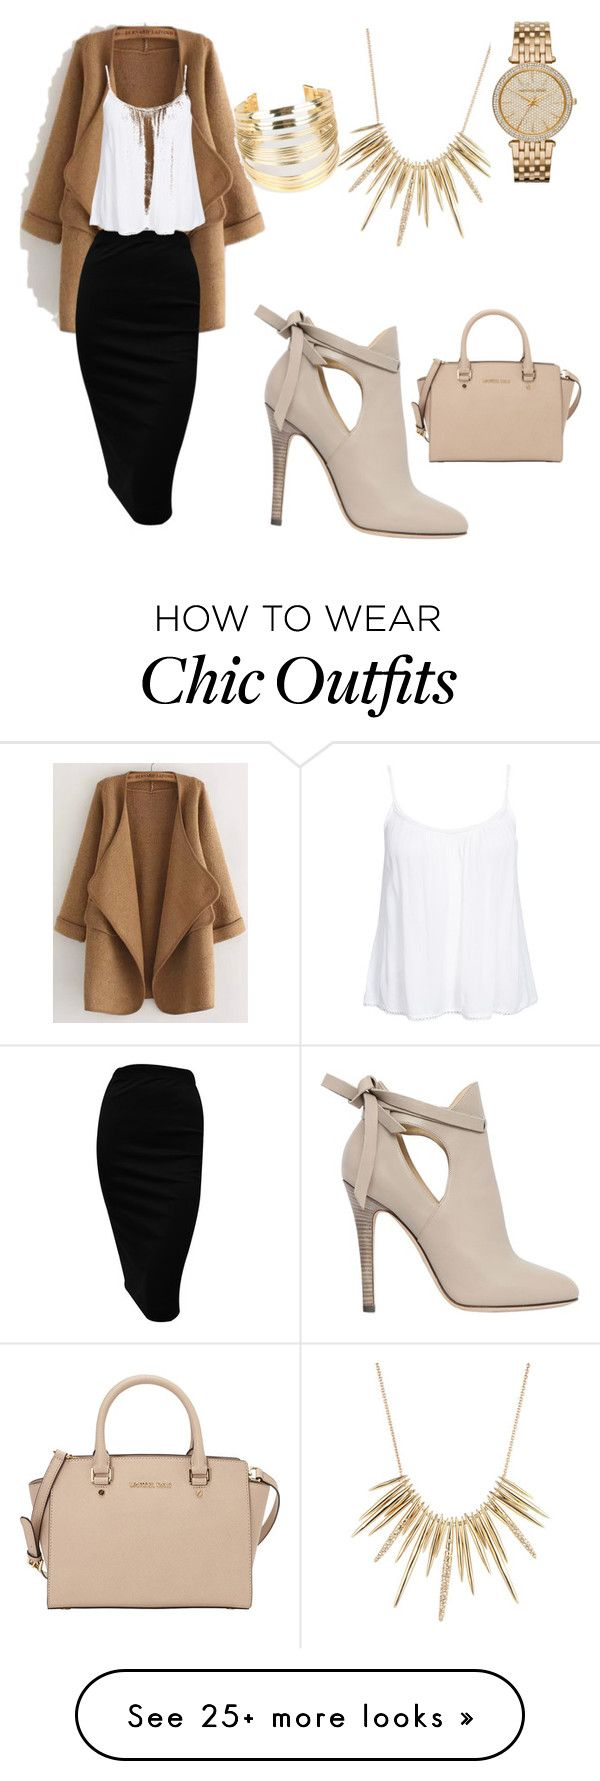 """Chic and Comfortable"" by jleonard0730 on Polyvore featuring WithChic, Jimmy Choo, New Look, Alexis Bittar and MICHAEL Michael Kors"